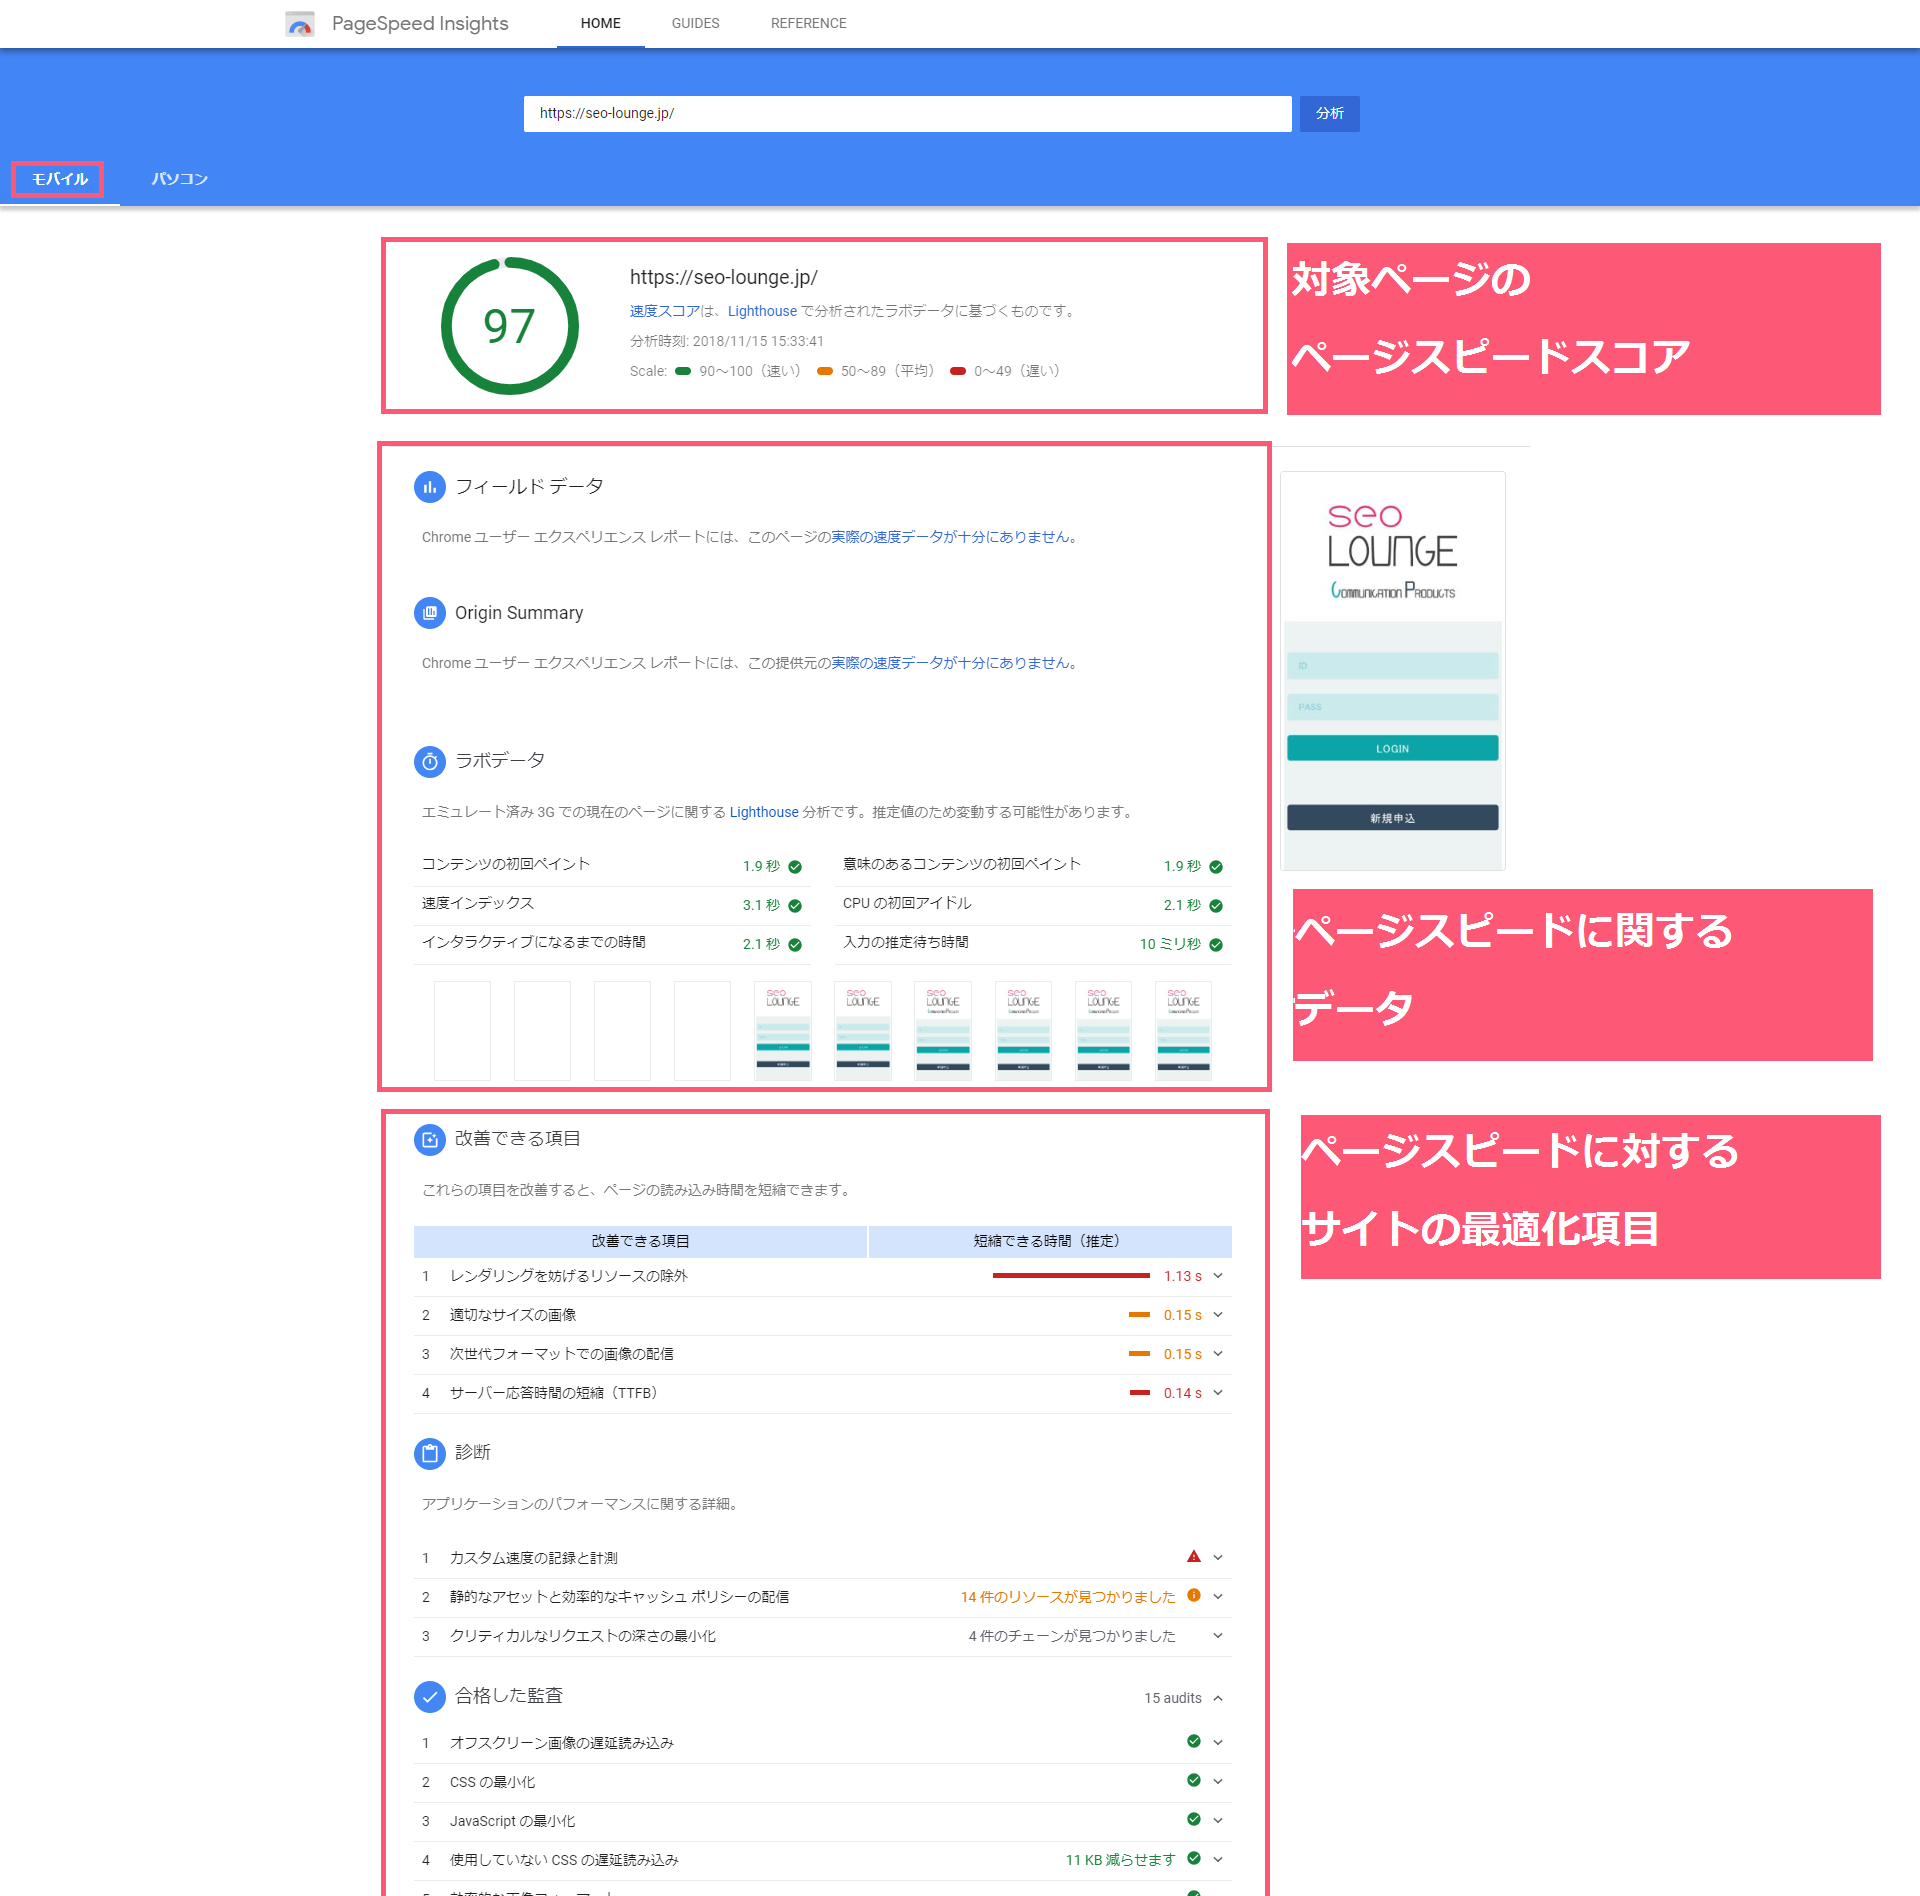 PageSpeed Insightsの確認画面